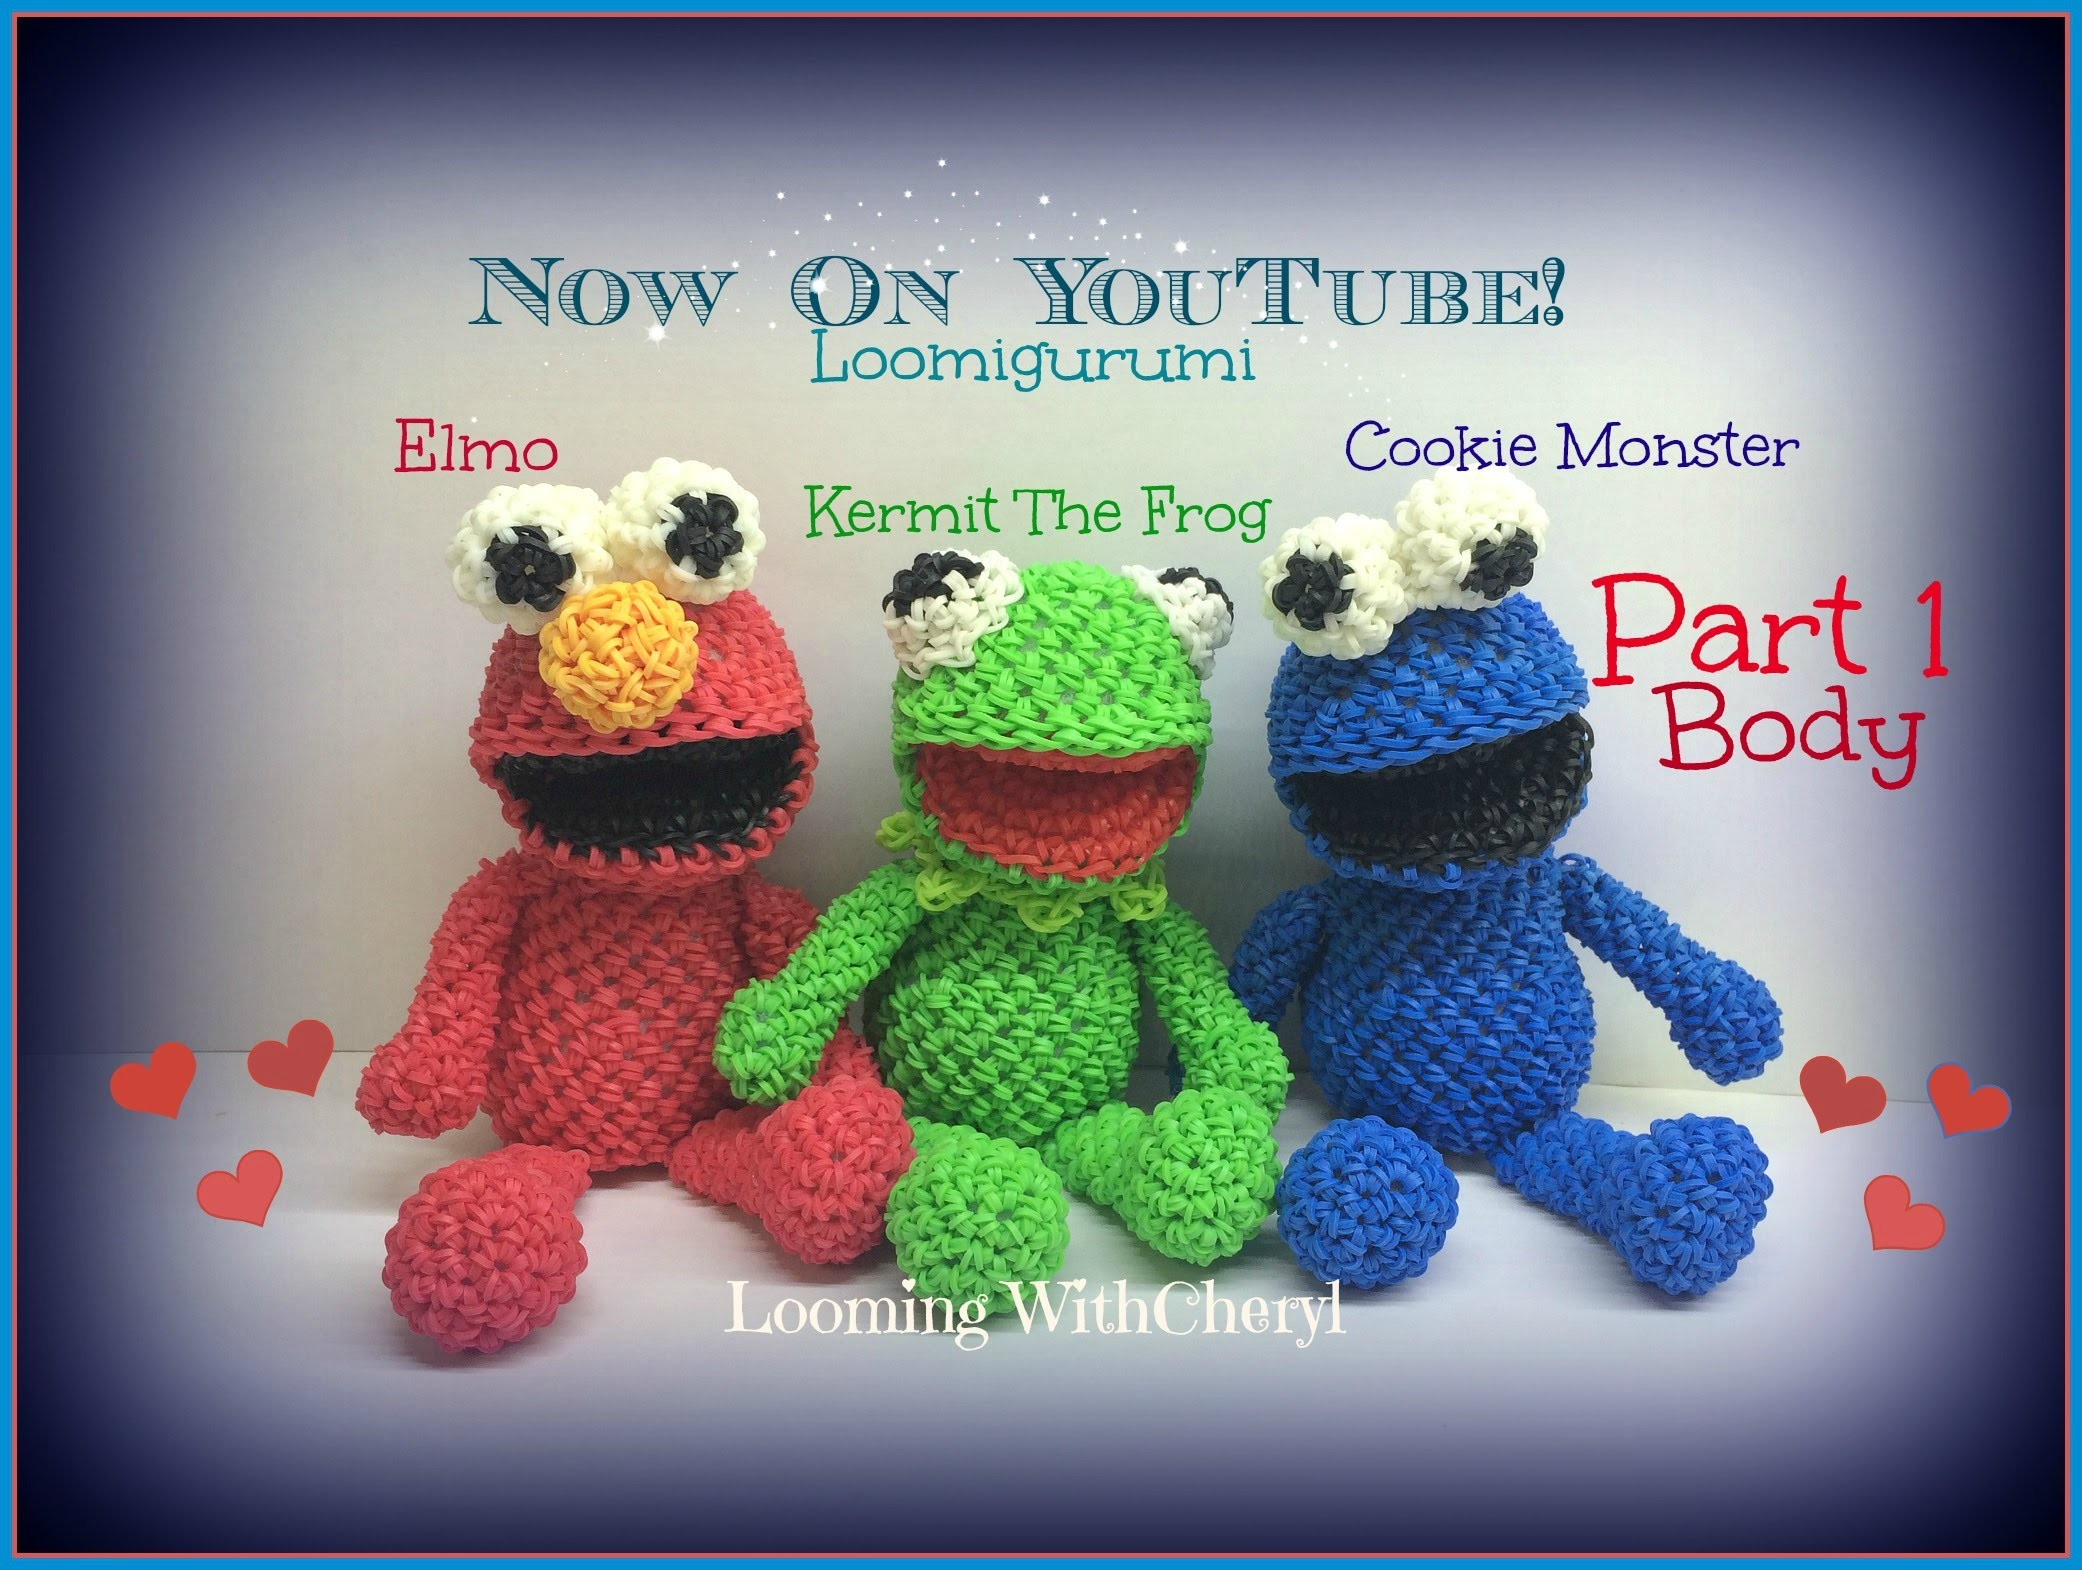 Rainbow Loom BODY for Kermit The Frog. ELMO. Cookie Monster (Part 1 of 3) Loomigurumi Amigurumi